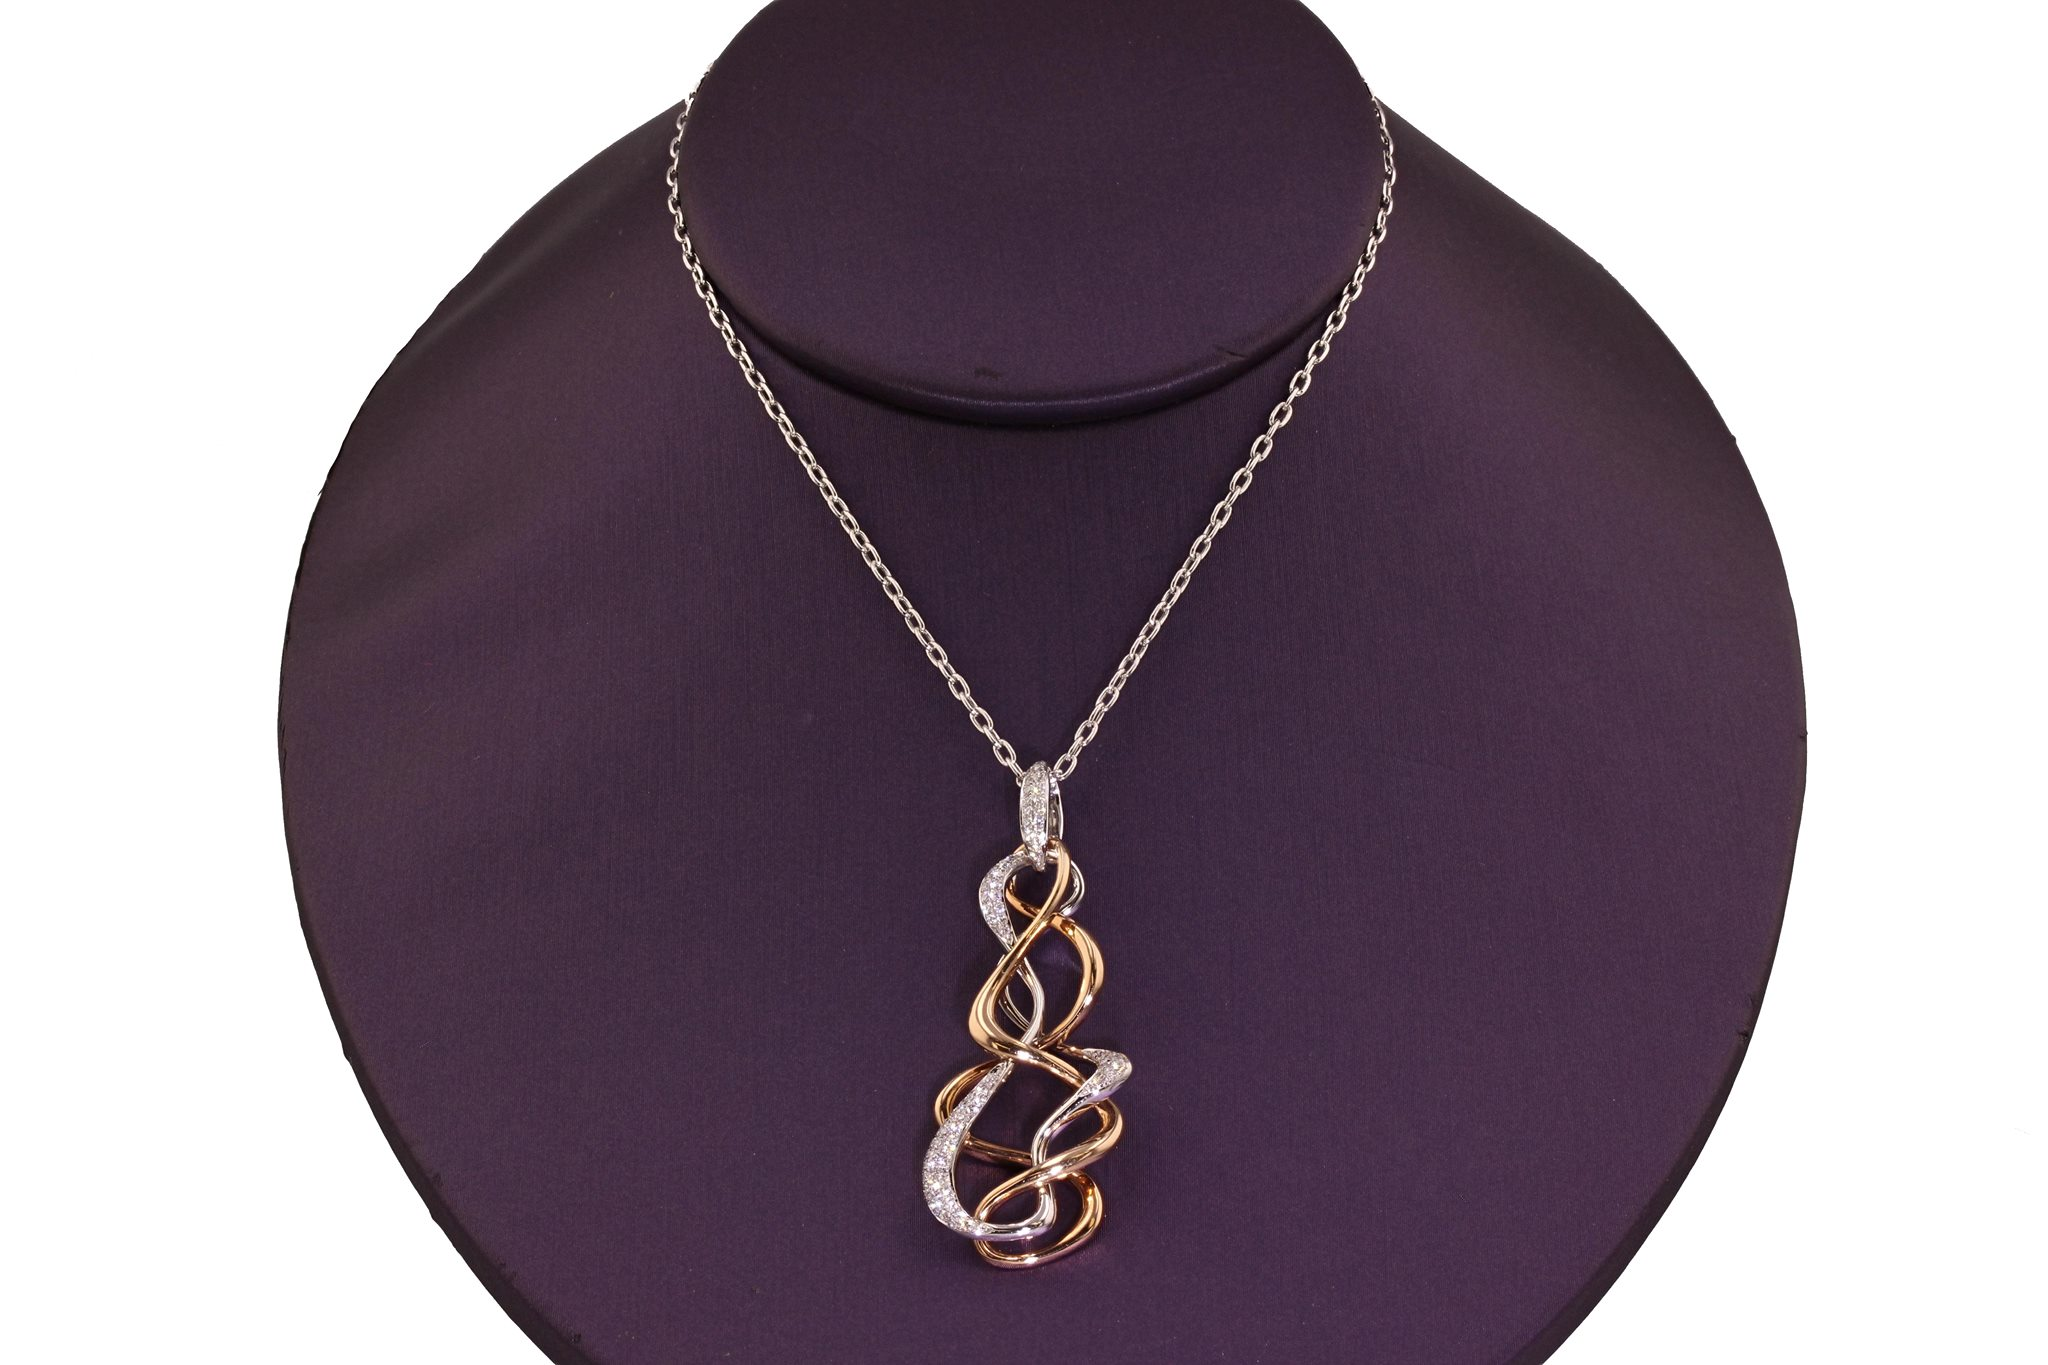 """18kt White and Rose Gold two-piece Diamond Pavé """"Double Twist"""" Pendant and Chain. 0.30 ctw. $3900"""